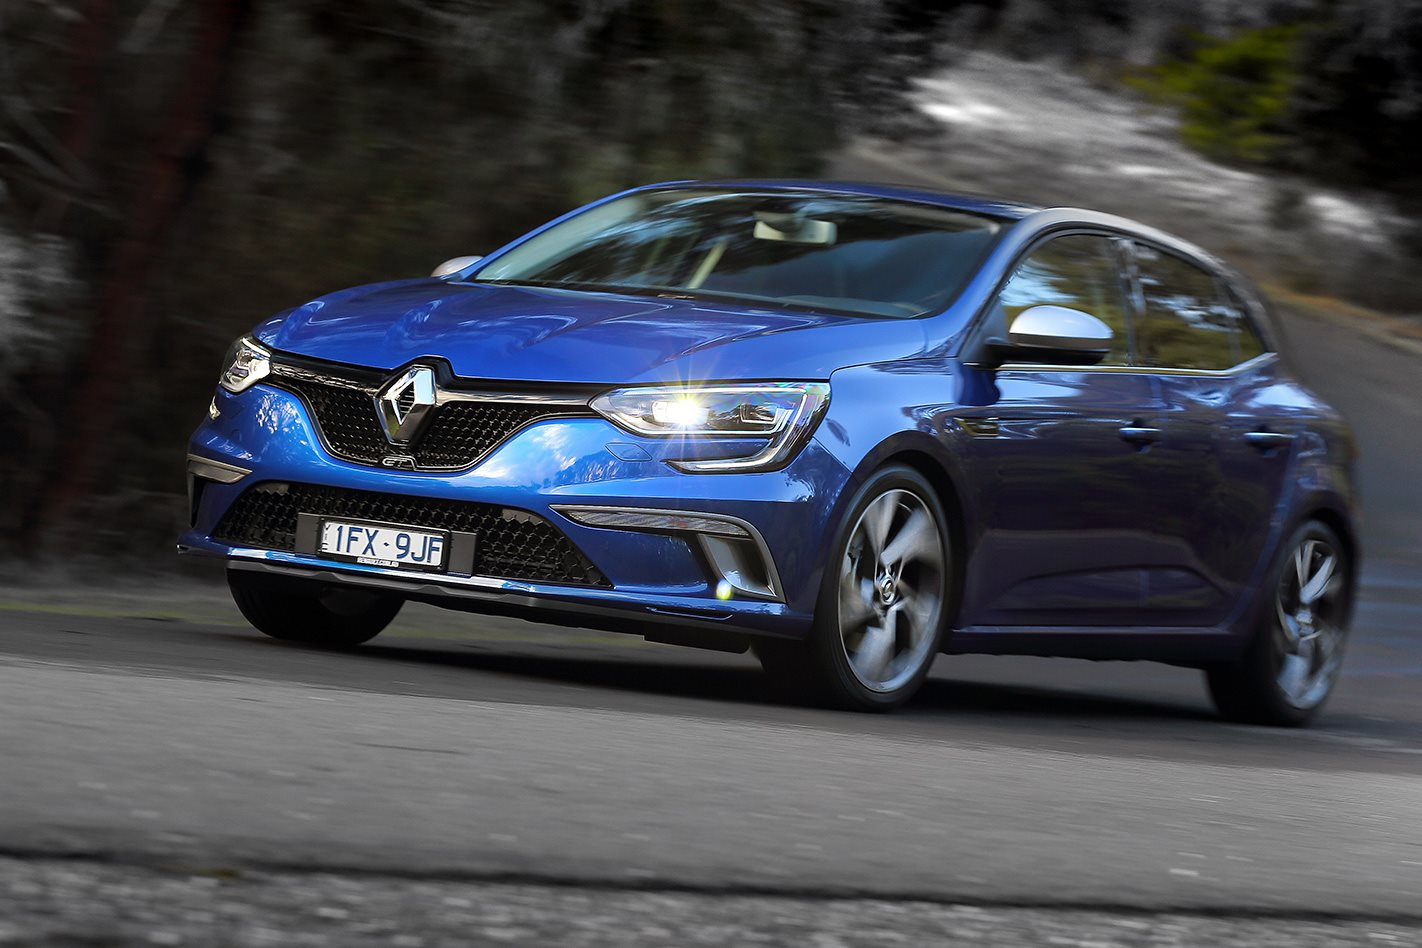 2016 renault megane gt review wheels. Black Bedroom Furniture Sets. Home Design Ideas